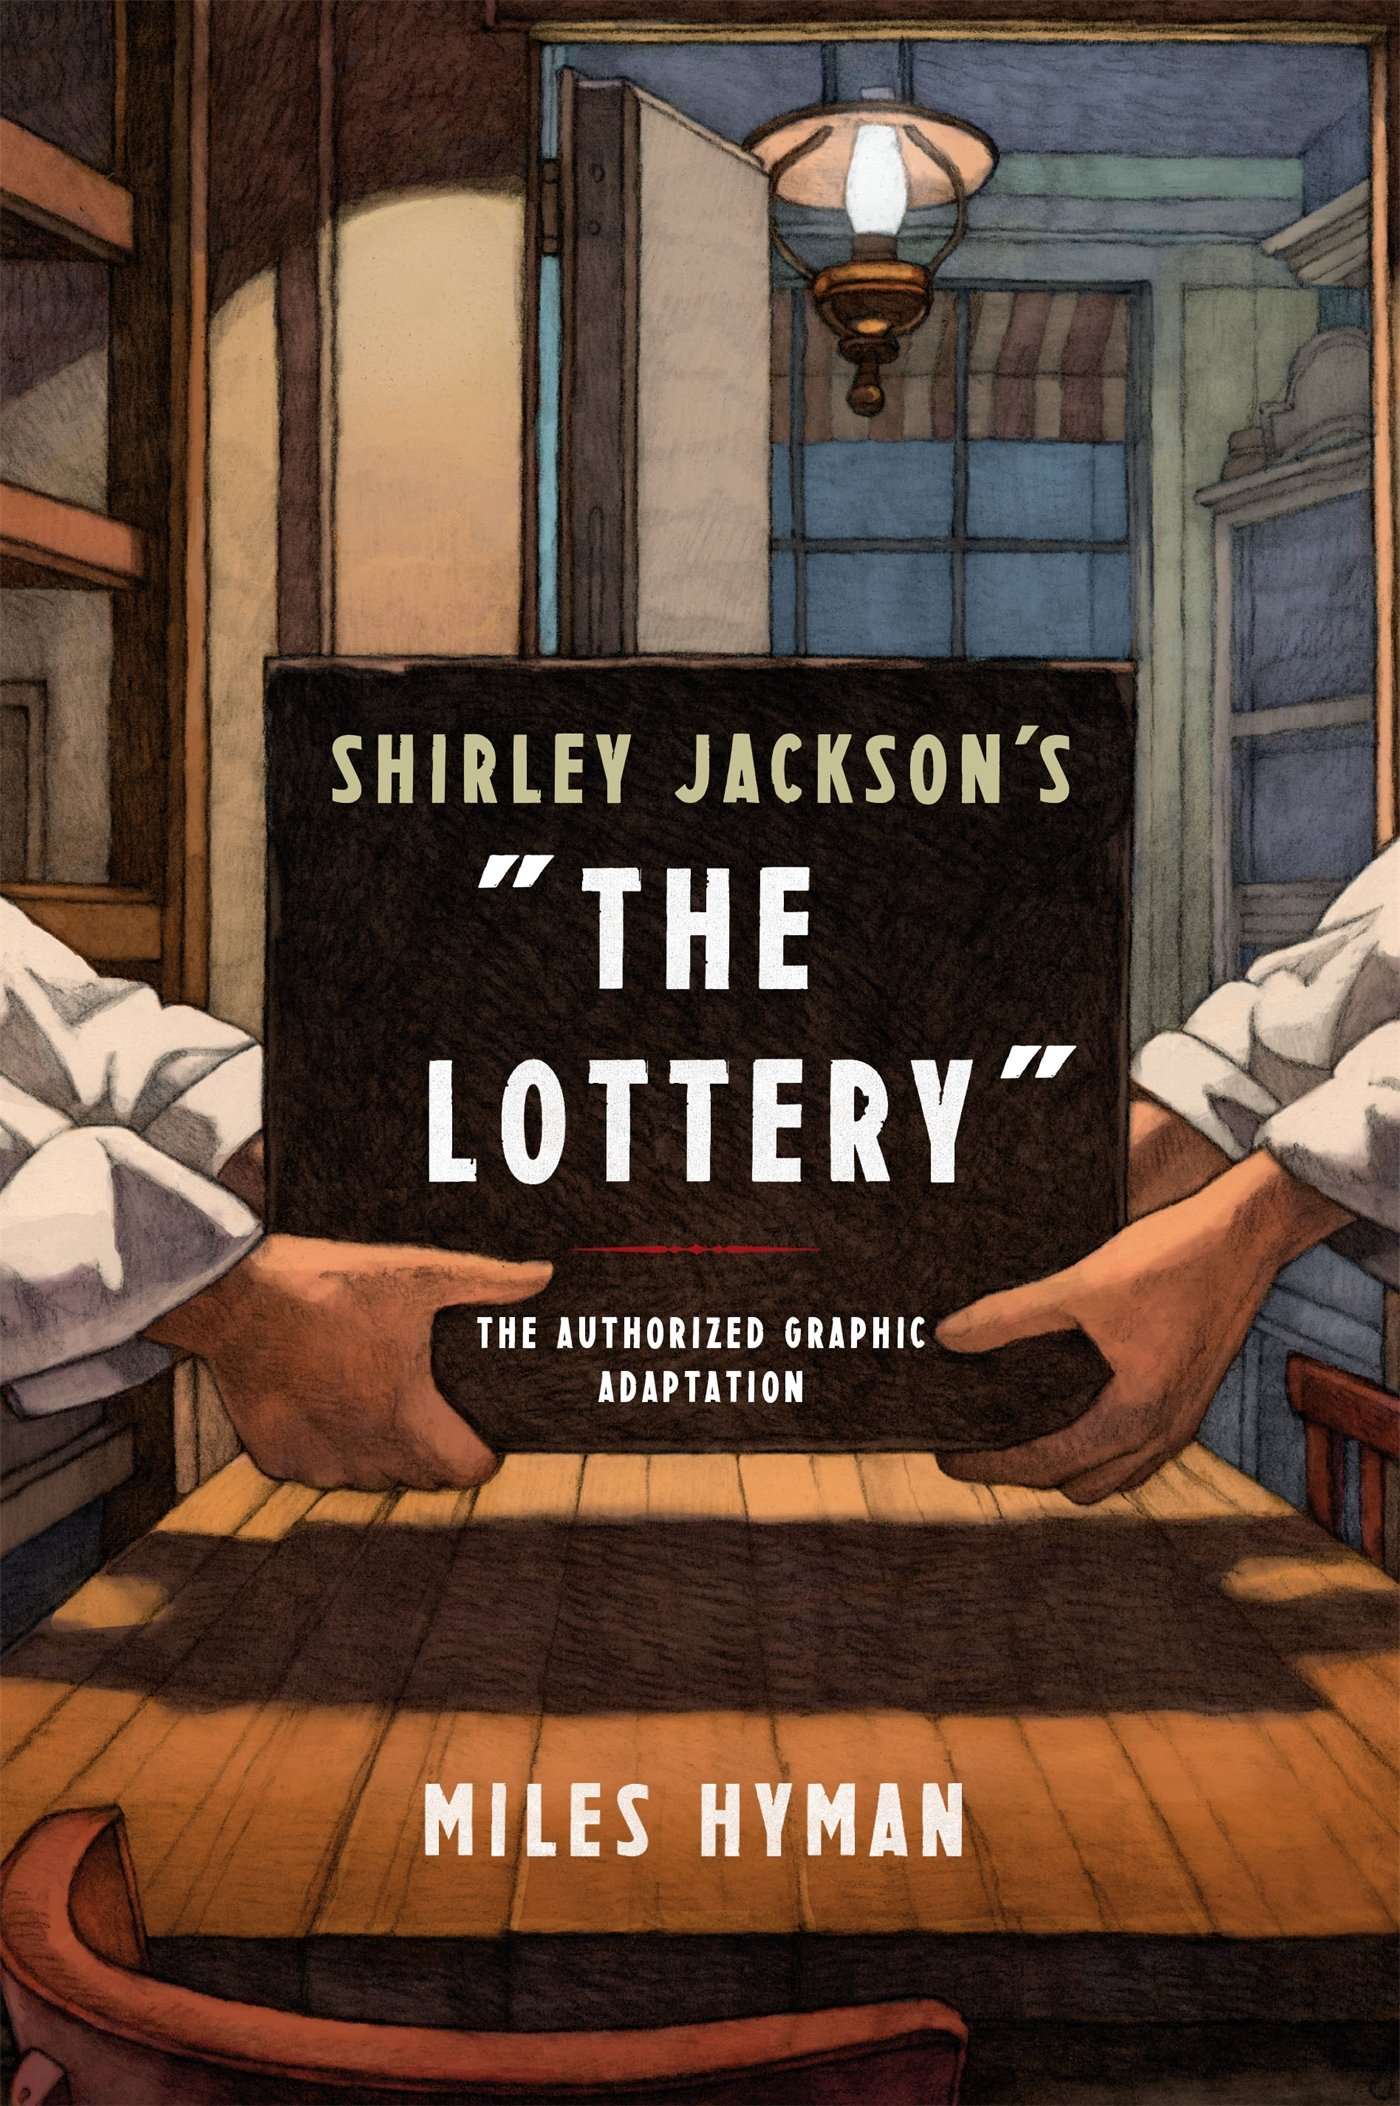 the typical lottery story of a small town in shirley jacksons the lottery Shirley jackson's the lottery shirley jackson's the lottery is an excellent example of an allegorical short story in this story, the reader learns of a town's lottery that takes place once a year, every year.